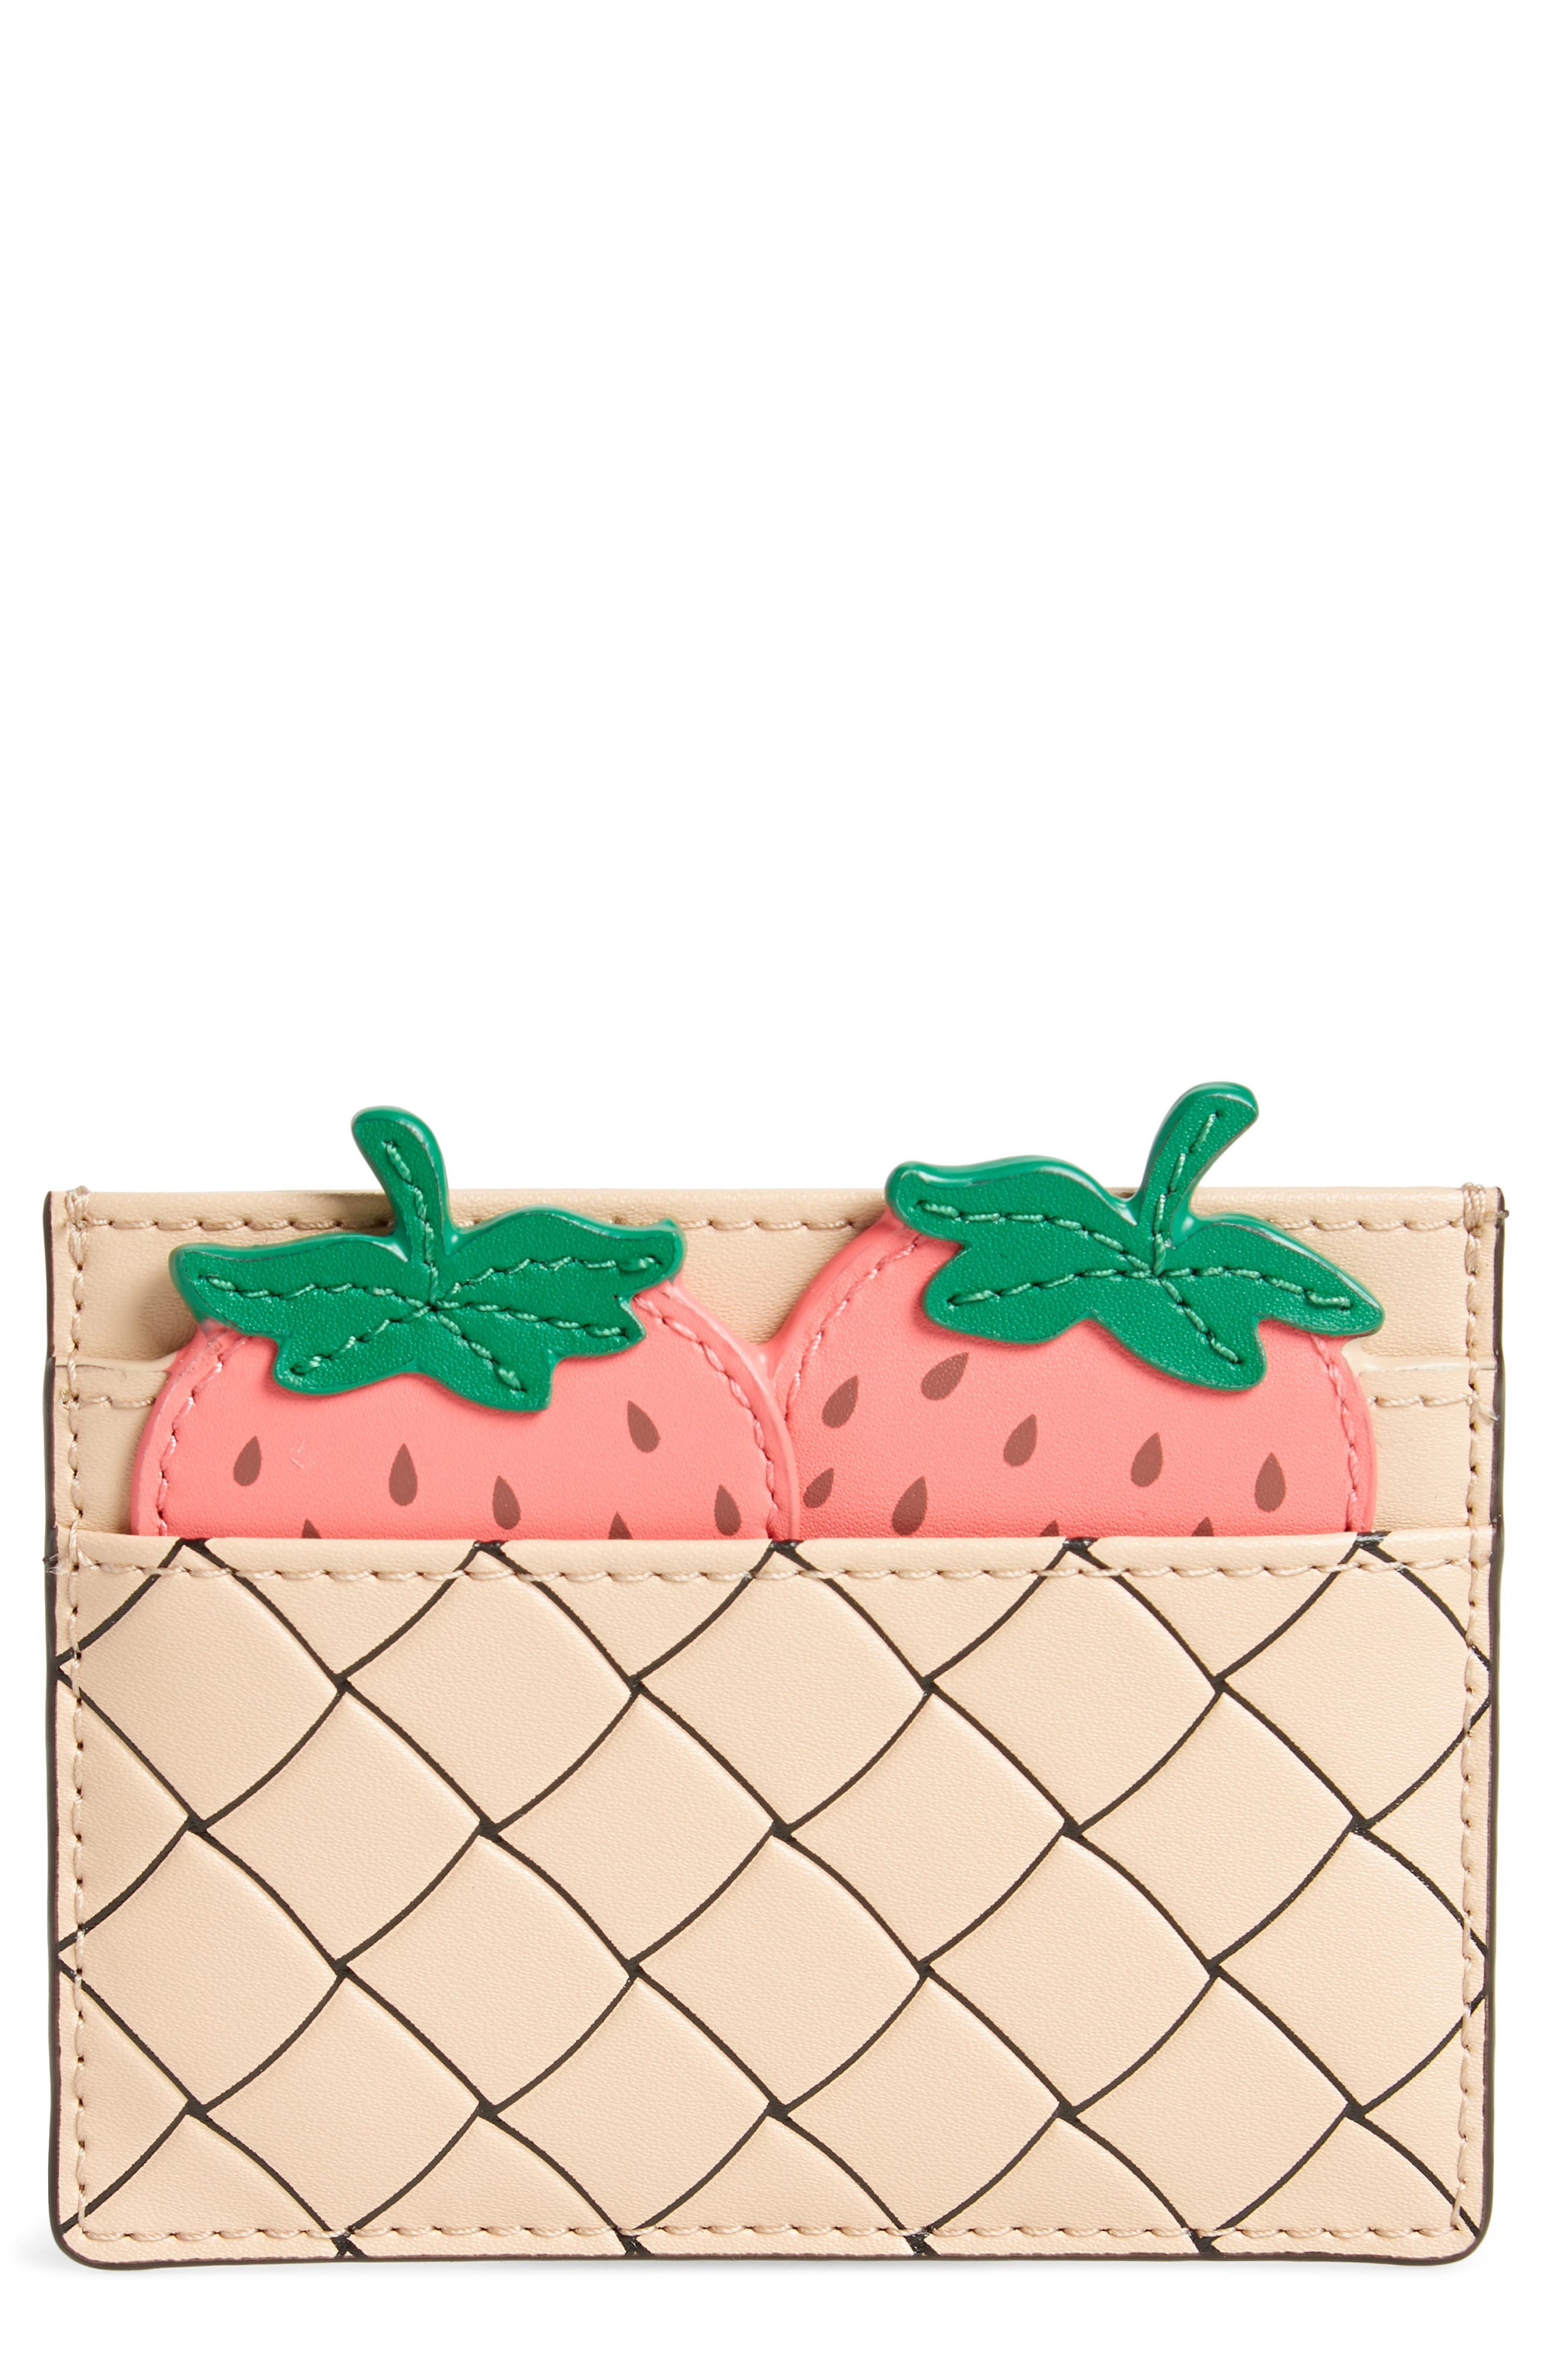 kate spade new york picnic strawberry basket leather card holder